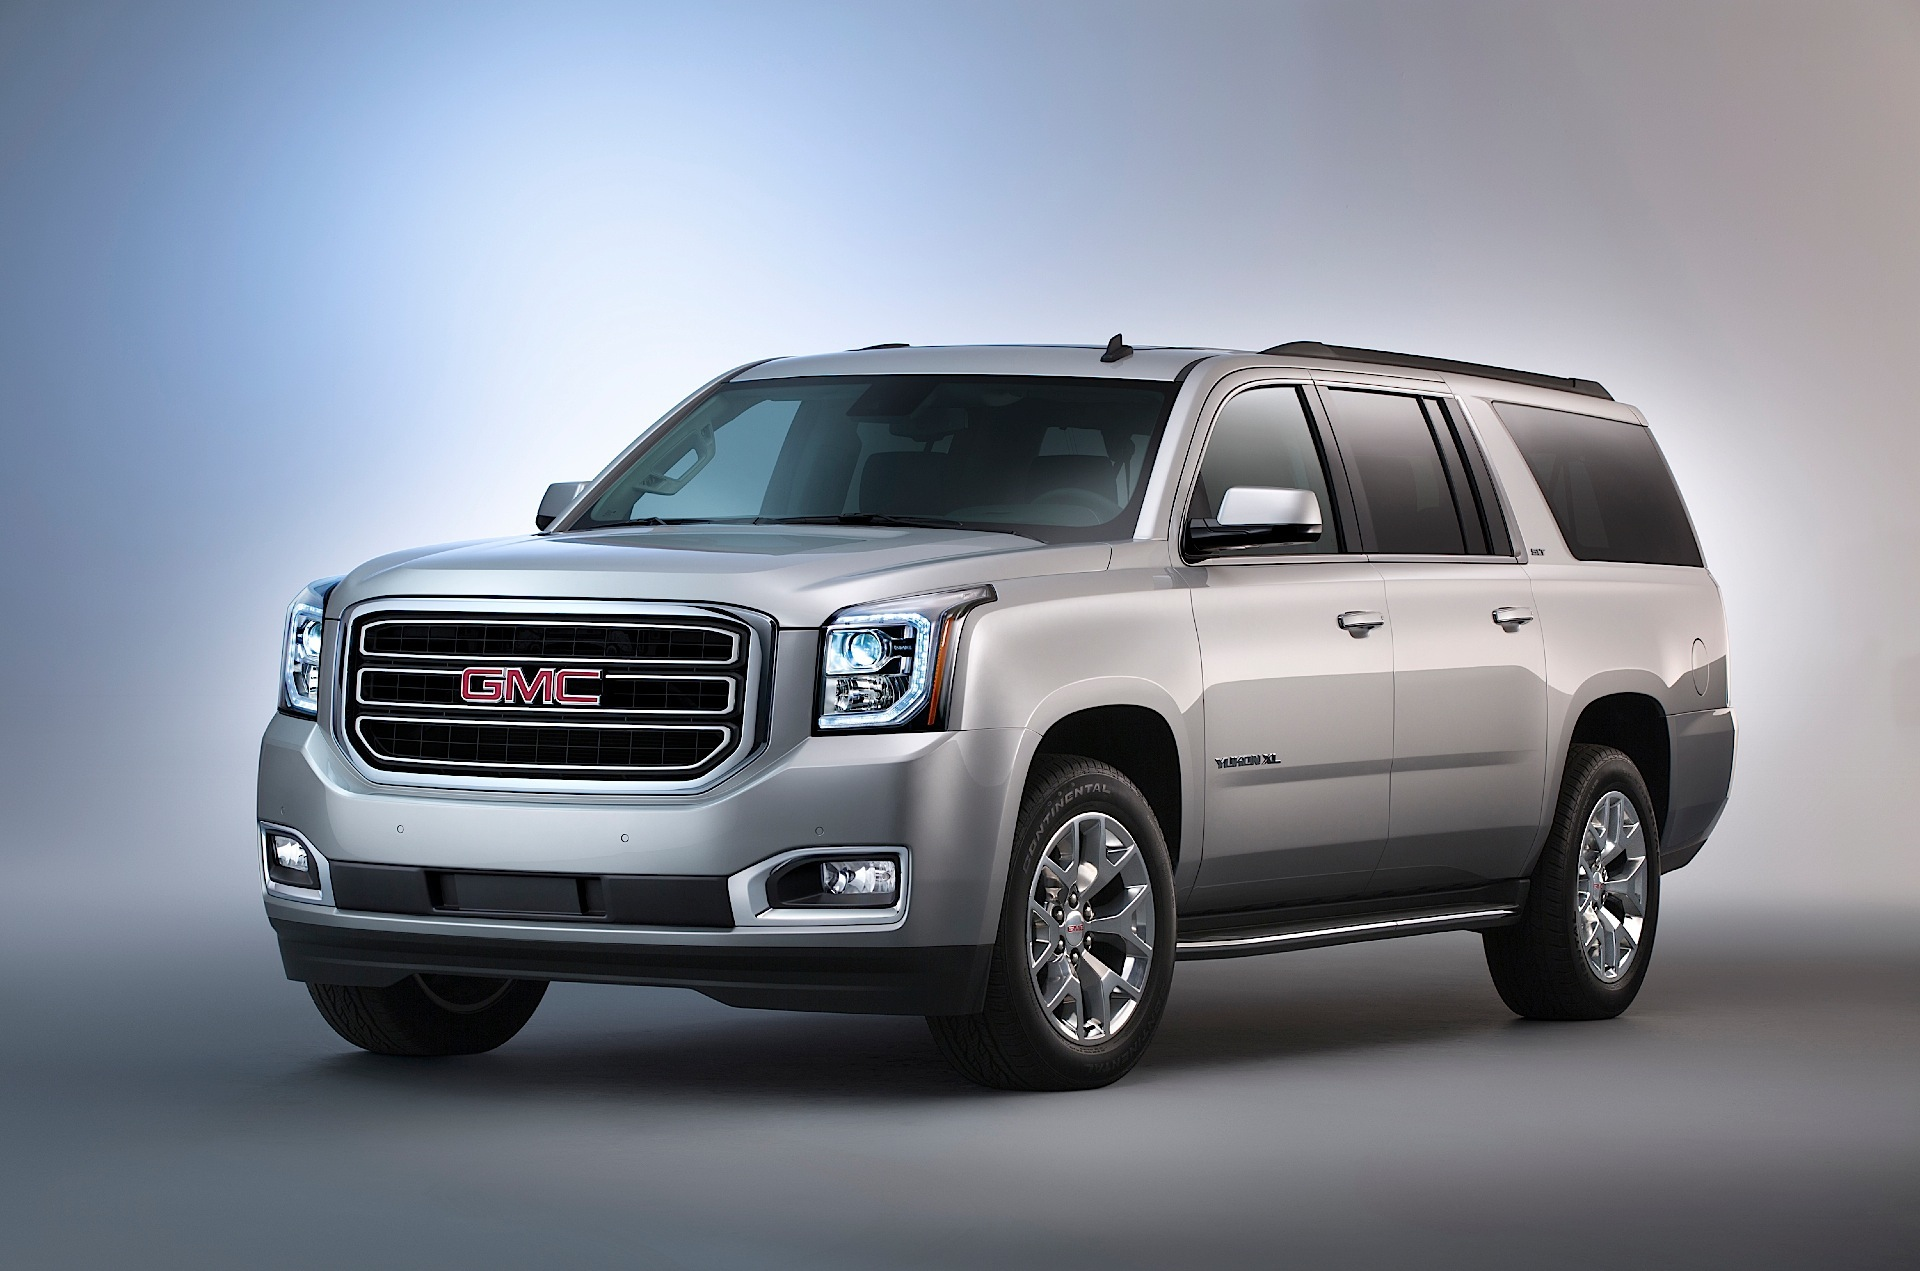 gmc yukon xl specs 2014 2015 2016 2017 2018. Black Bedroom Furniture Sets. Home Design Ideas